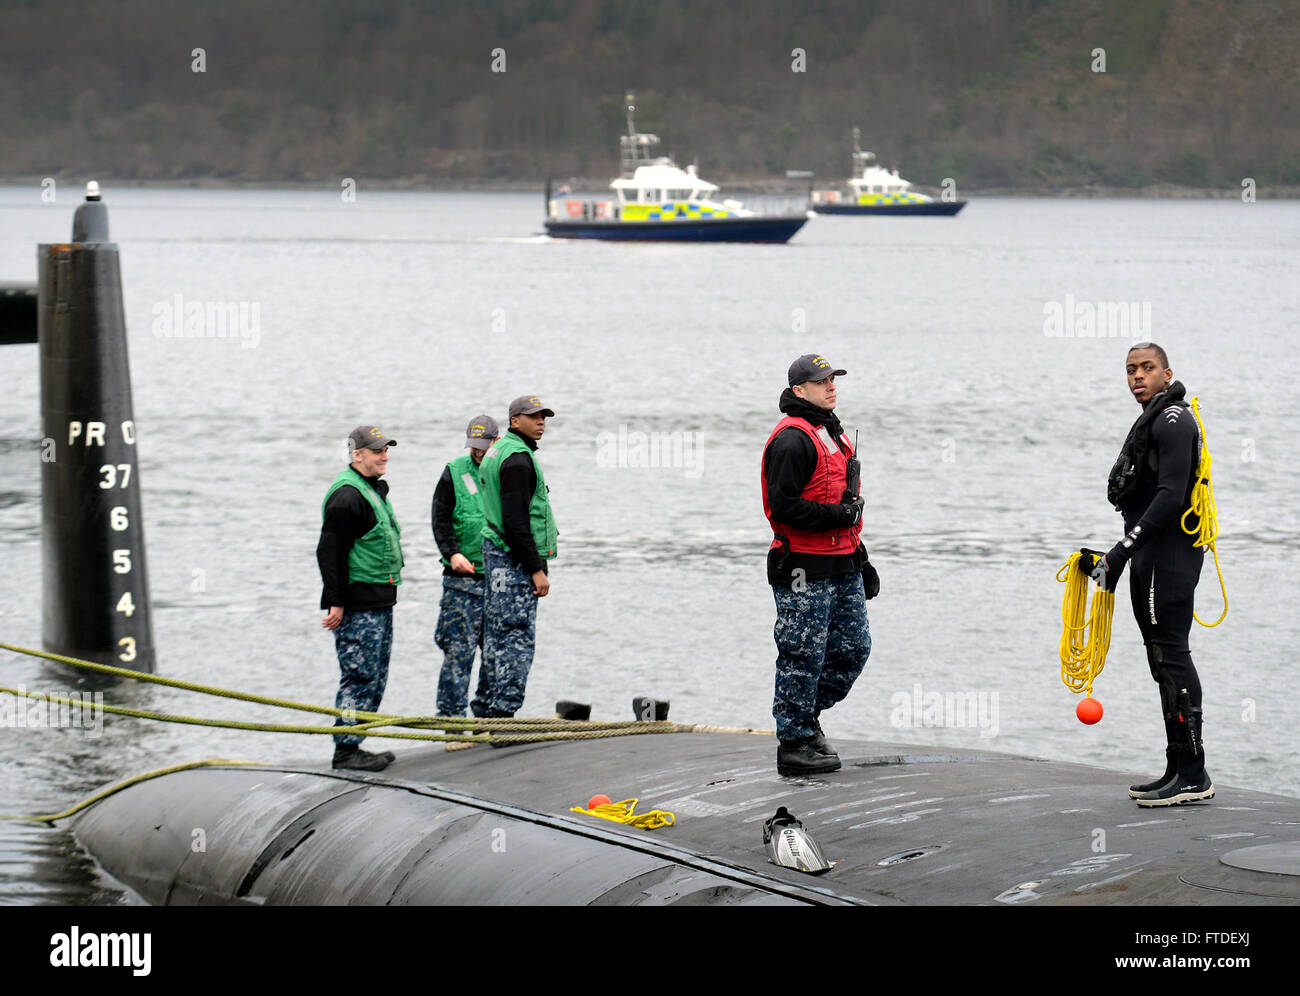 160322-N-ZZ999-006 FASLANE, United Kingdom (March 22, 2016) The Virginia-class attack submarine USS Virginia (SSN - Stock Image